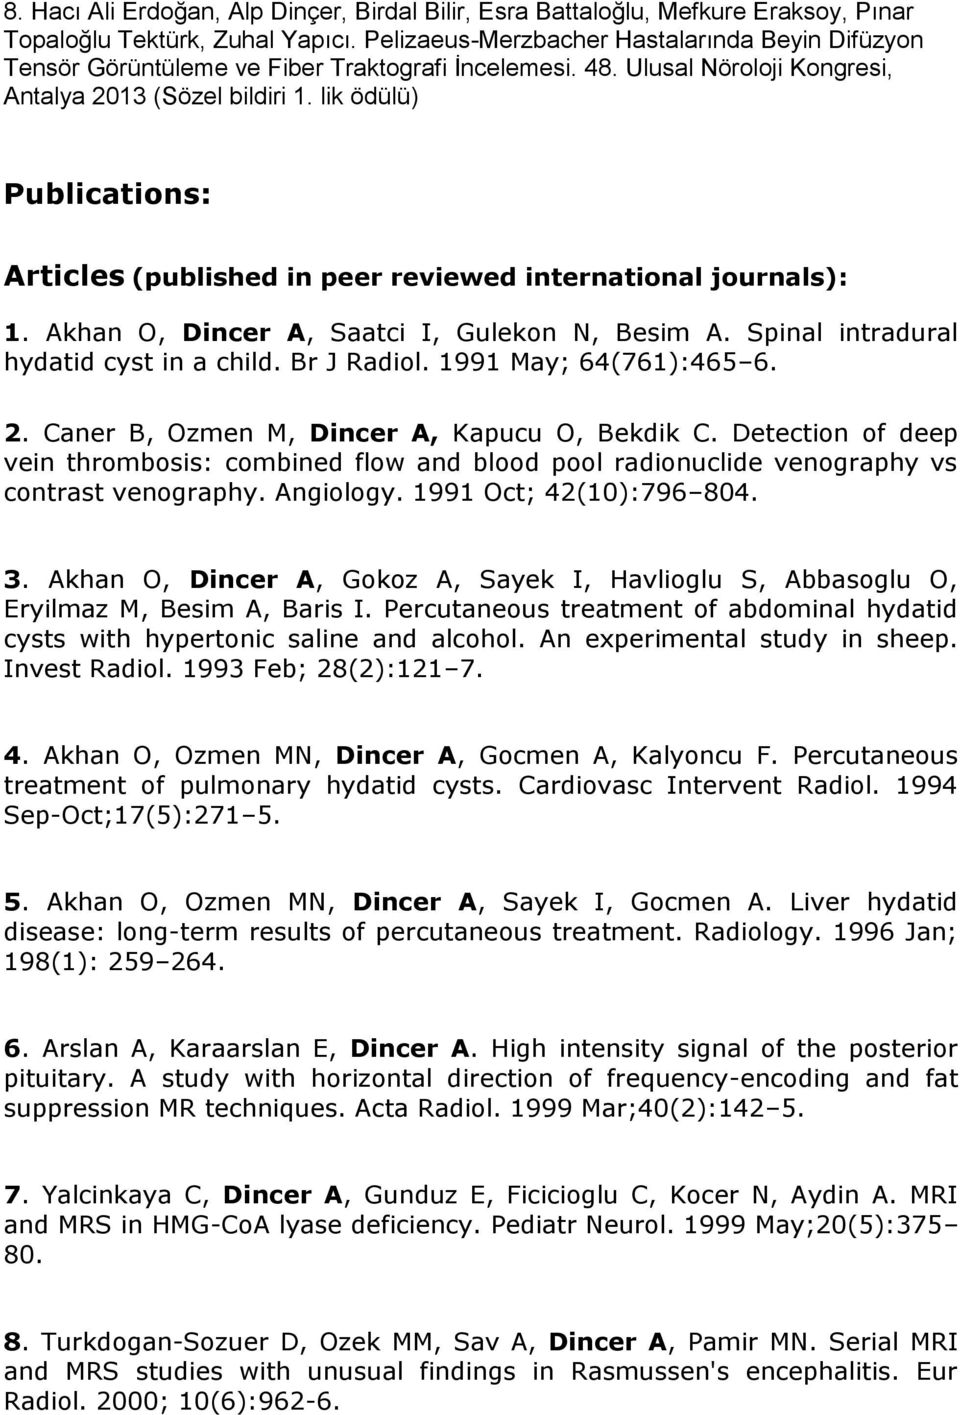 lik ödülü) Publications: Articles (published in peer reviewed international journals): 1. Akhan O, Dincer A, Saatci I, Gulekon N, Besim A. Spinal intradural hydatid cyst in a child. Br J Radiol.